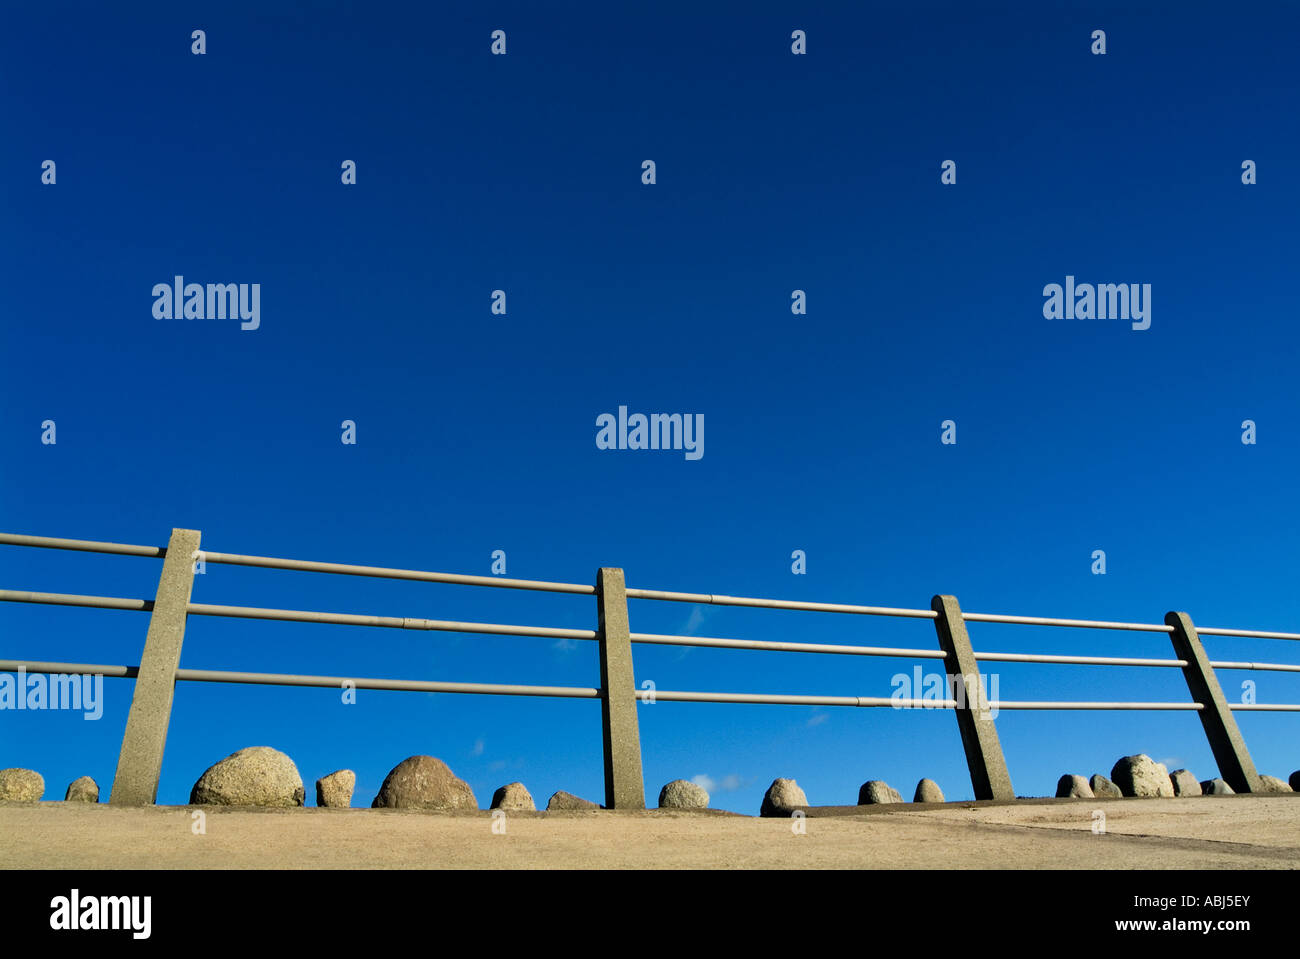 An unusual graphic art image of a metal pole fence and some rocks set against a deep blue sky exaggerated by wide - Stock Image